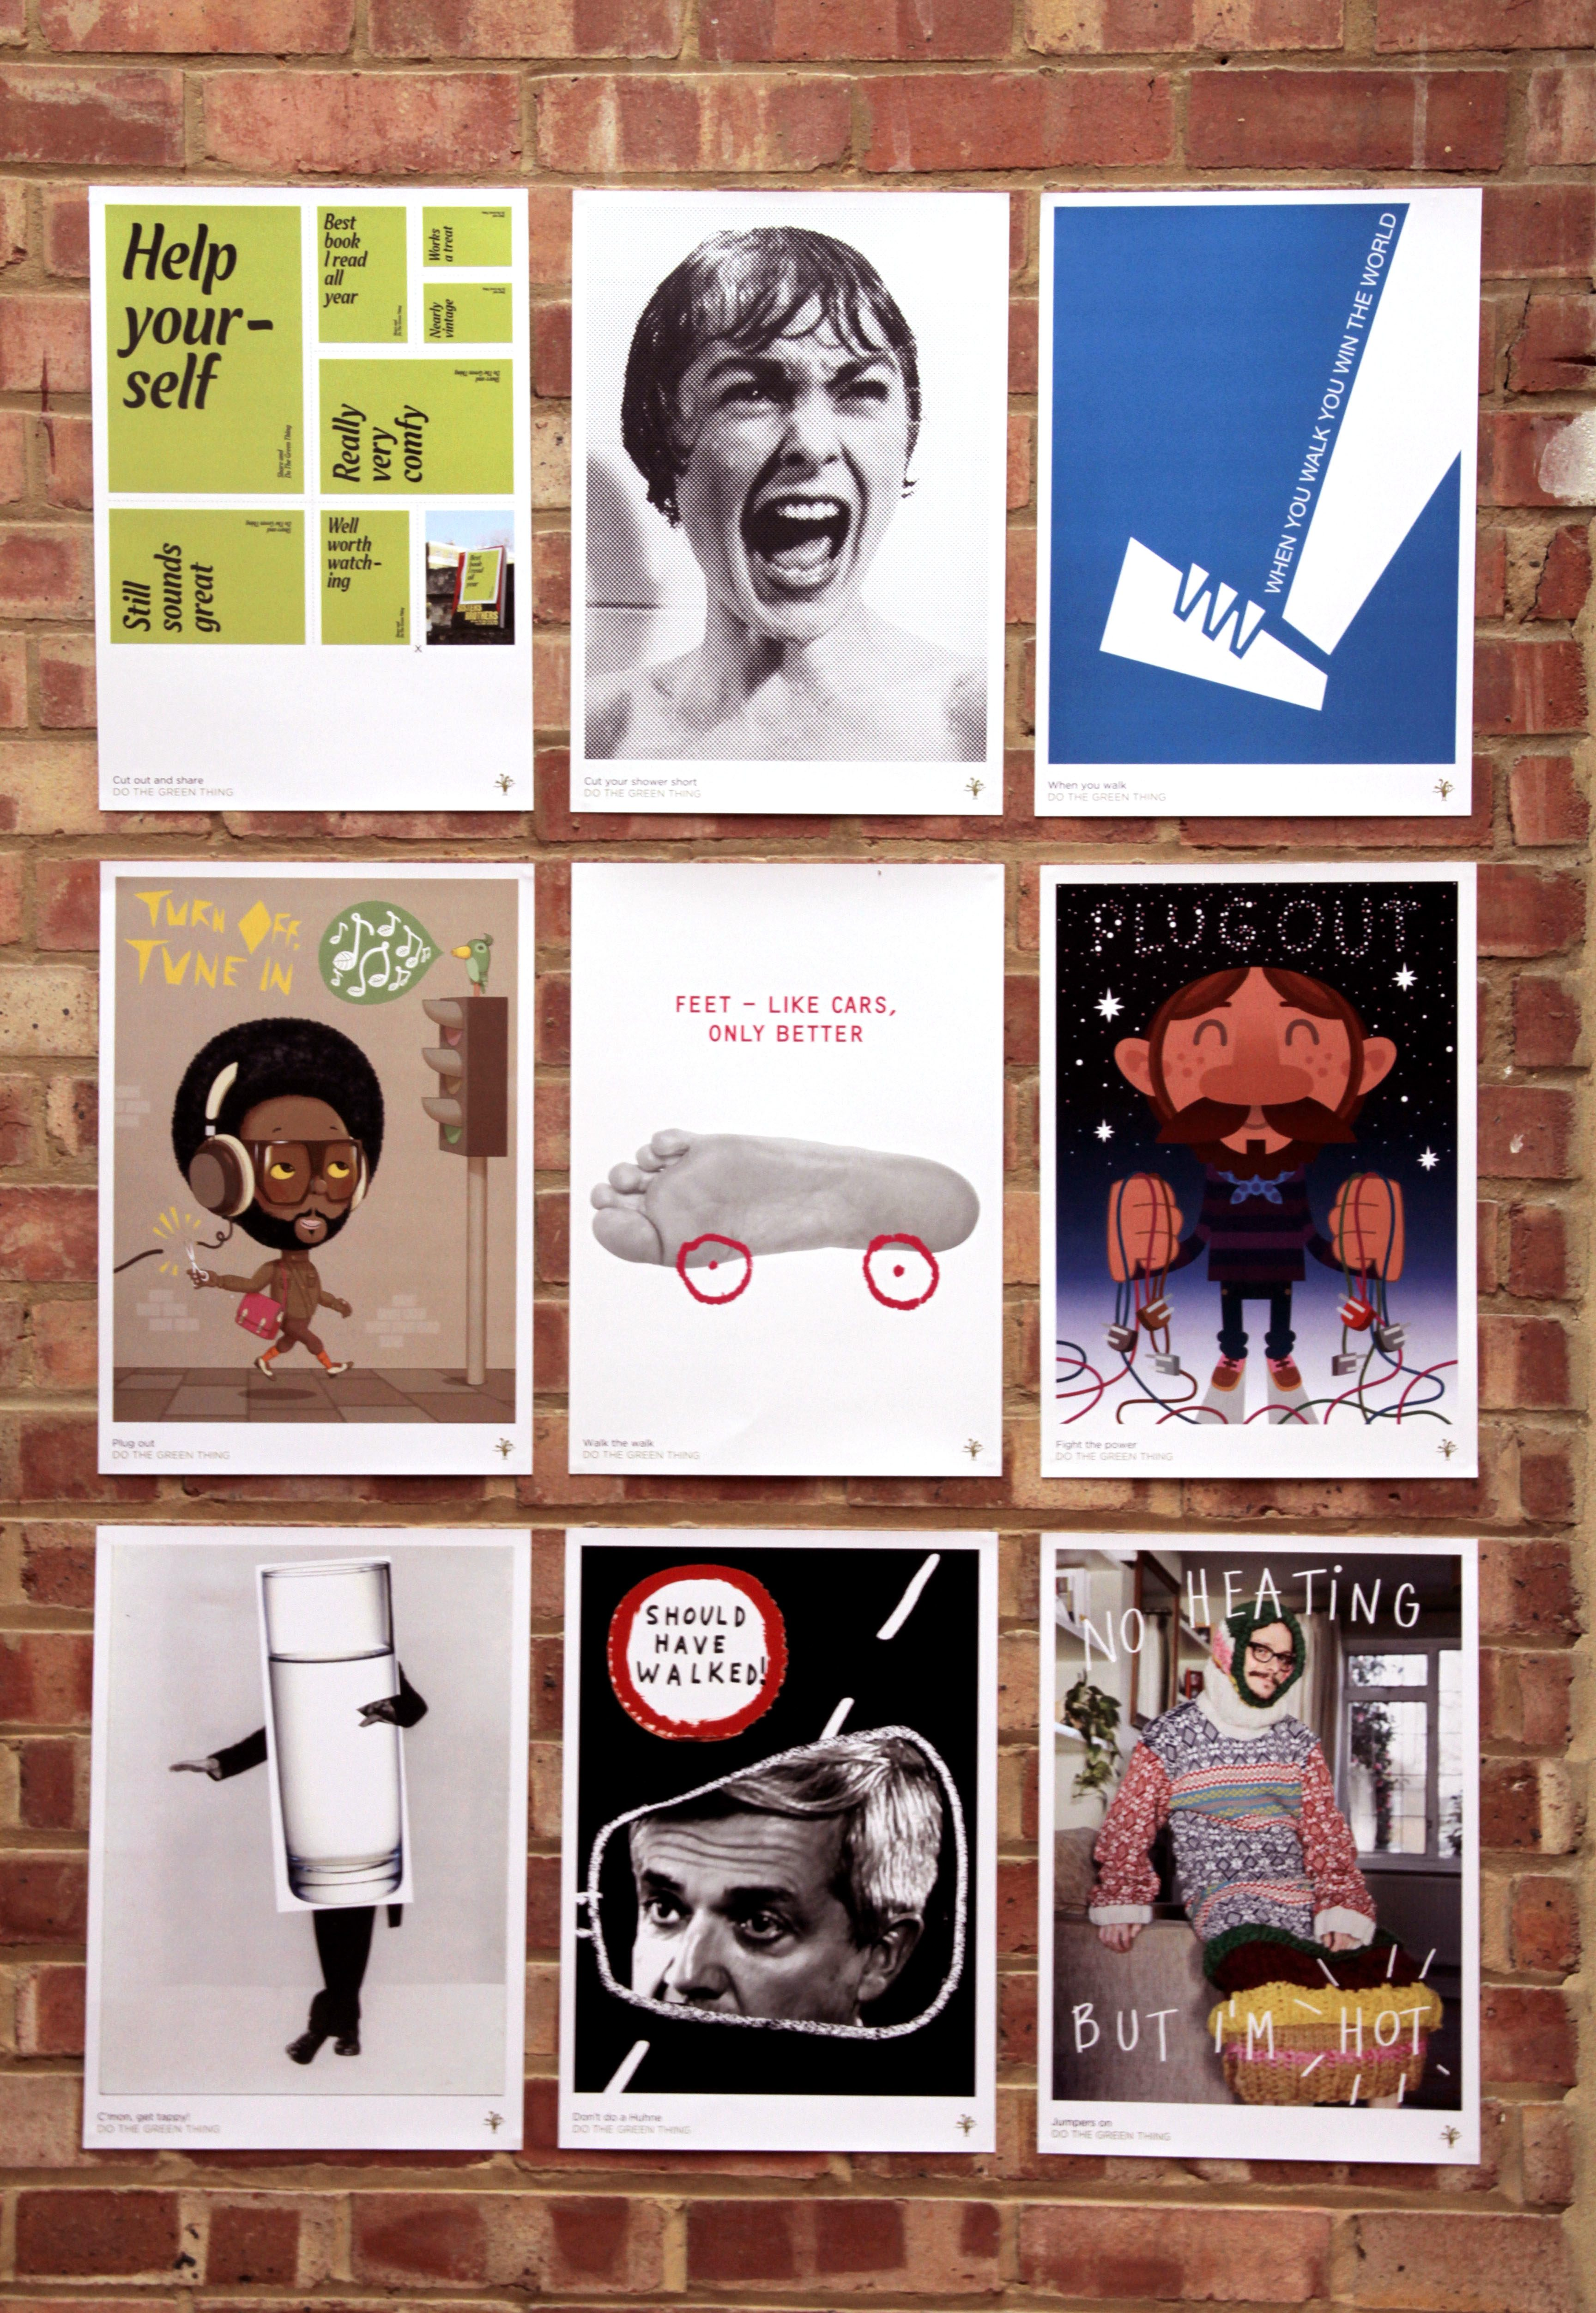 23 Posters Campaign by @Dothegreenthing